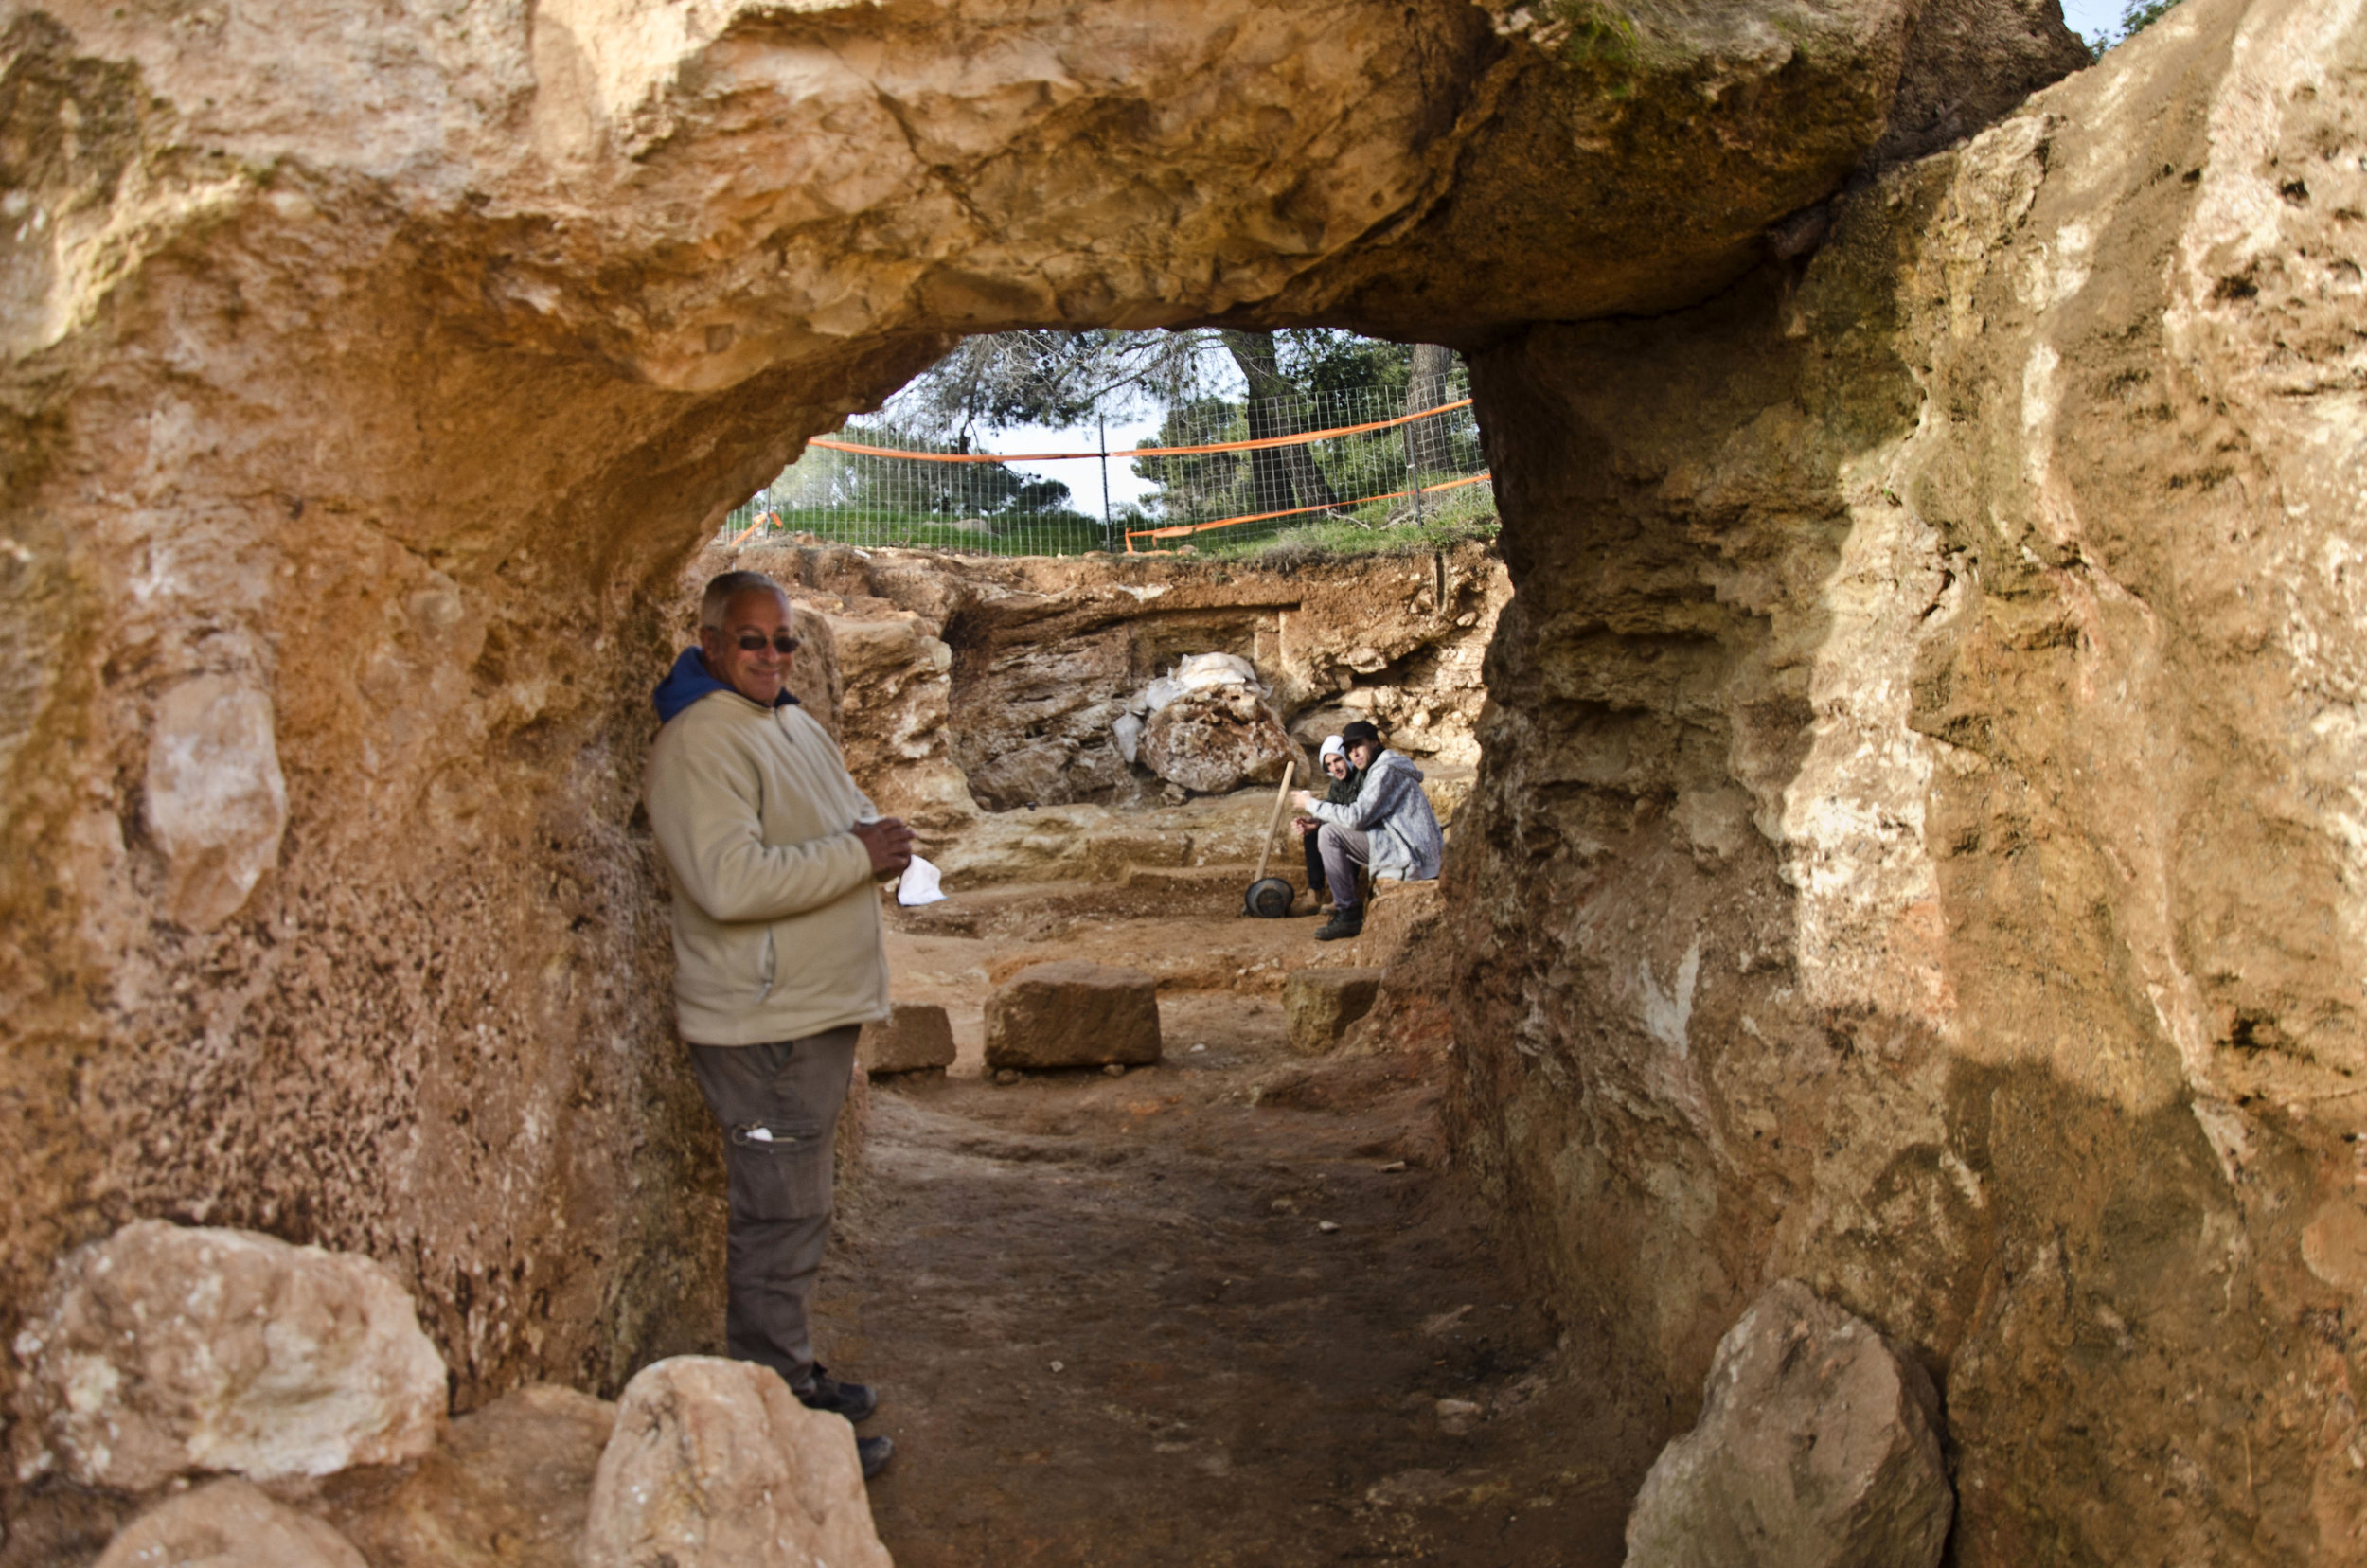 Extravagant burial estate from the Second Temple Period